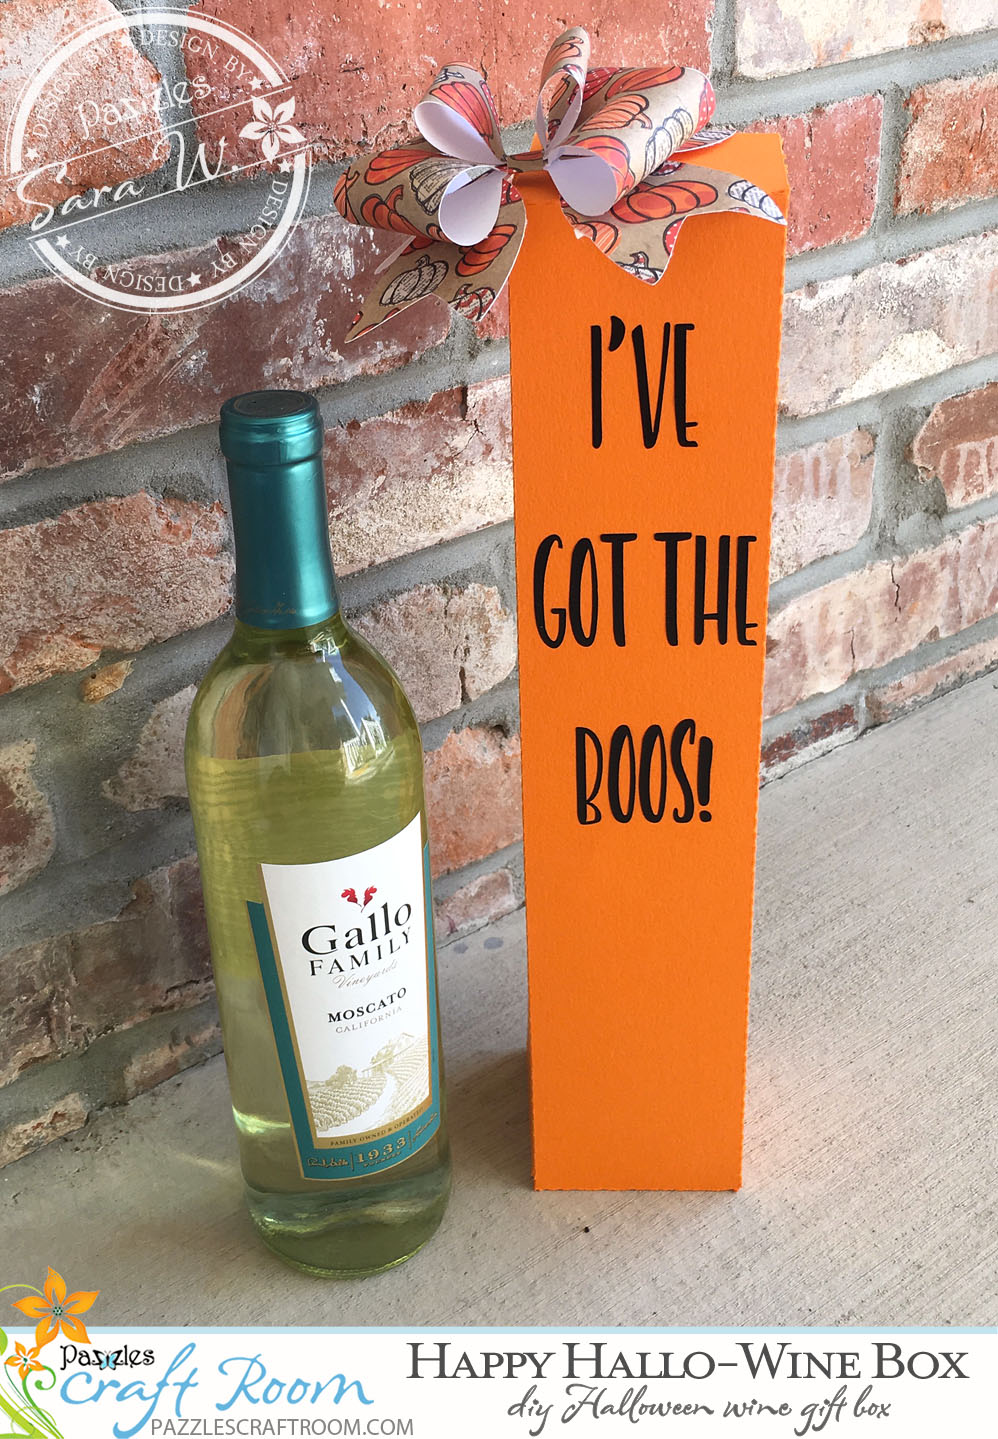 Pazzles DIY Halloween Wine Gift Box by Sara Weber